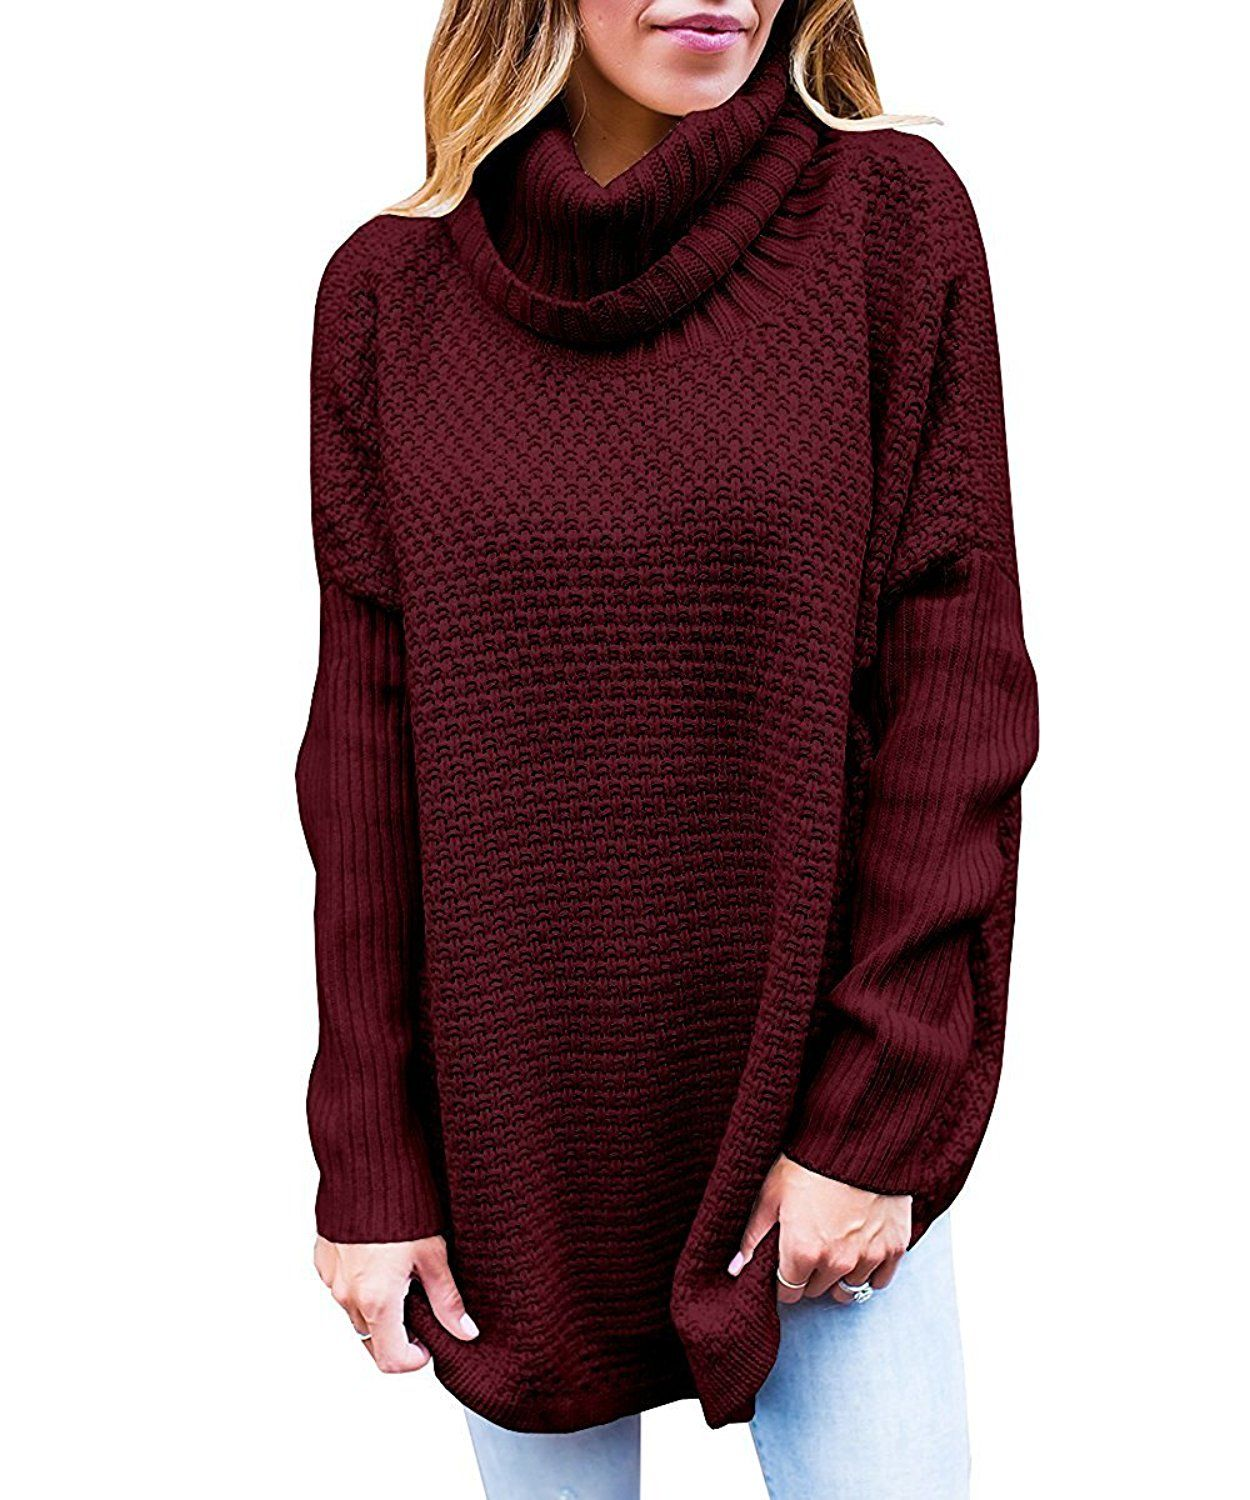 JOYCHEER Women Turtleneck Sweater Pullover Cable Knit Oversized ...